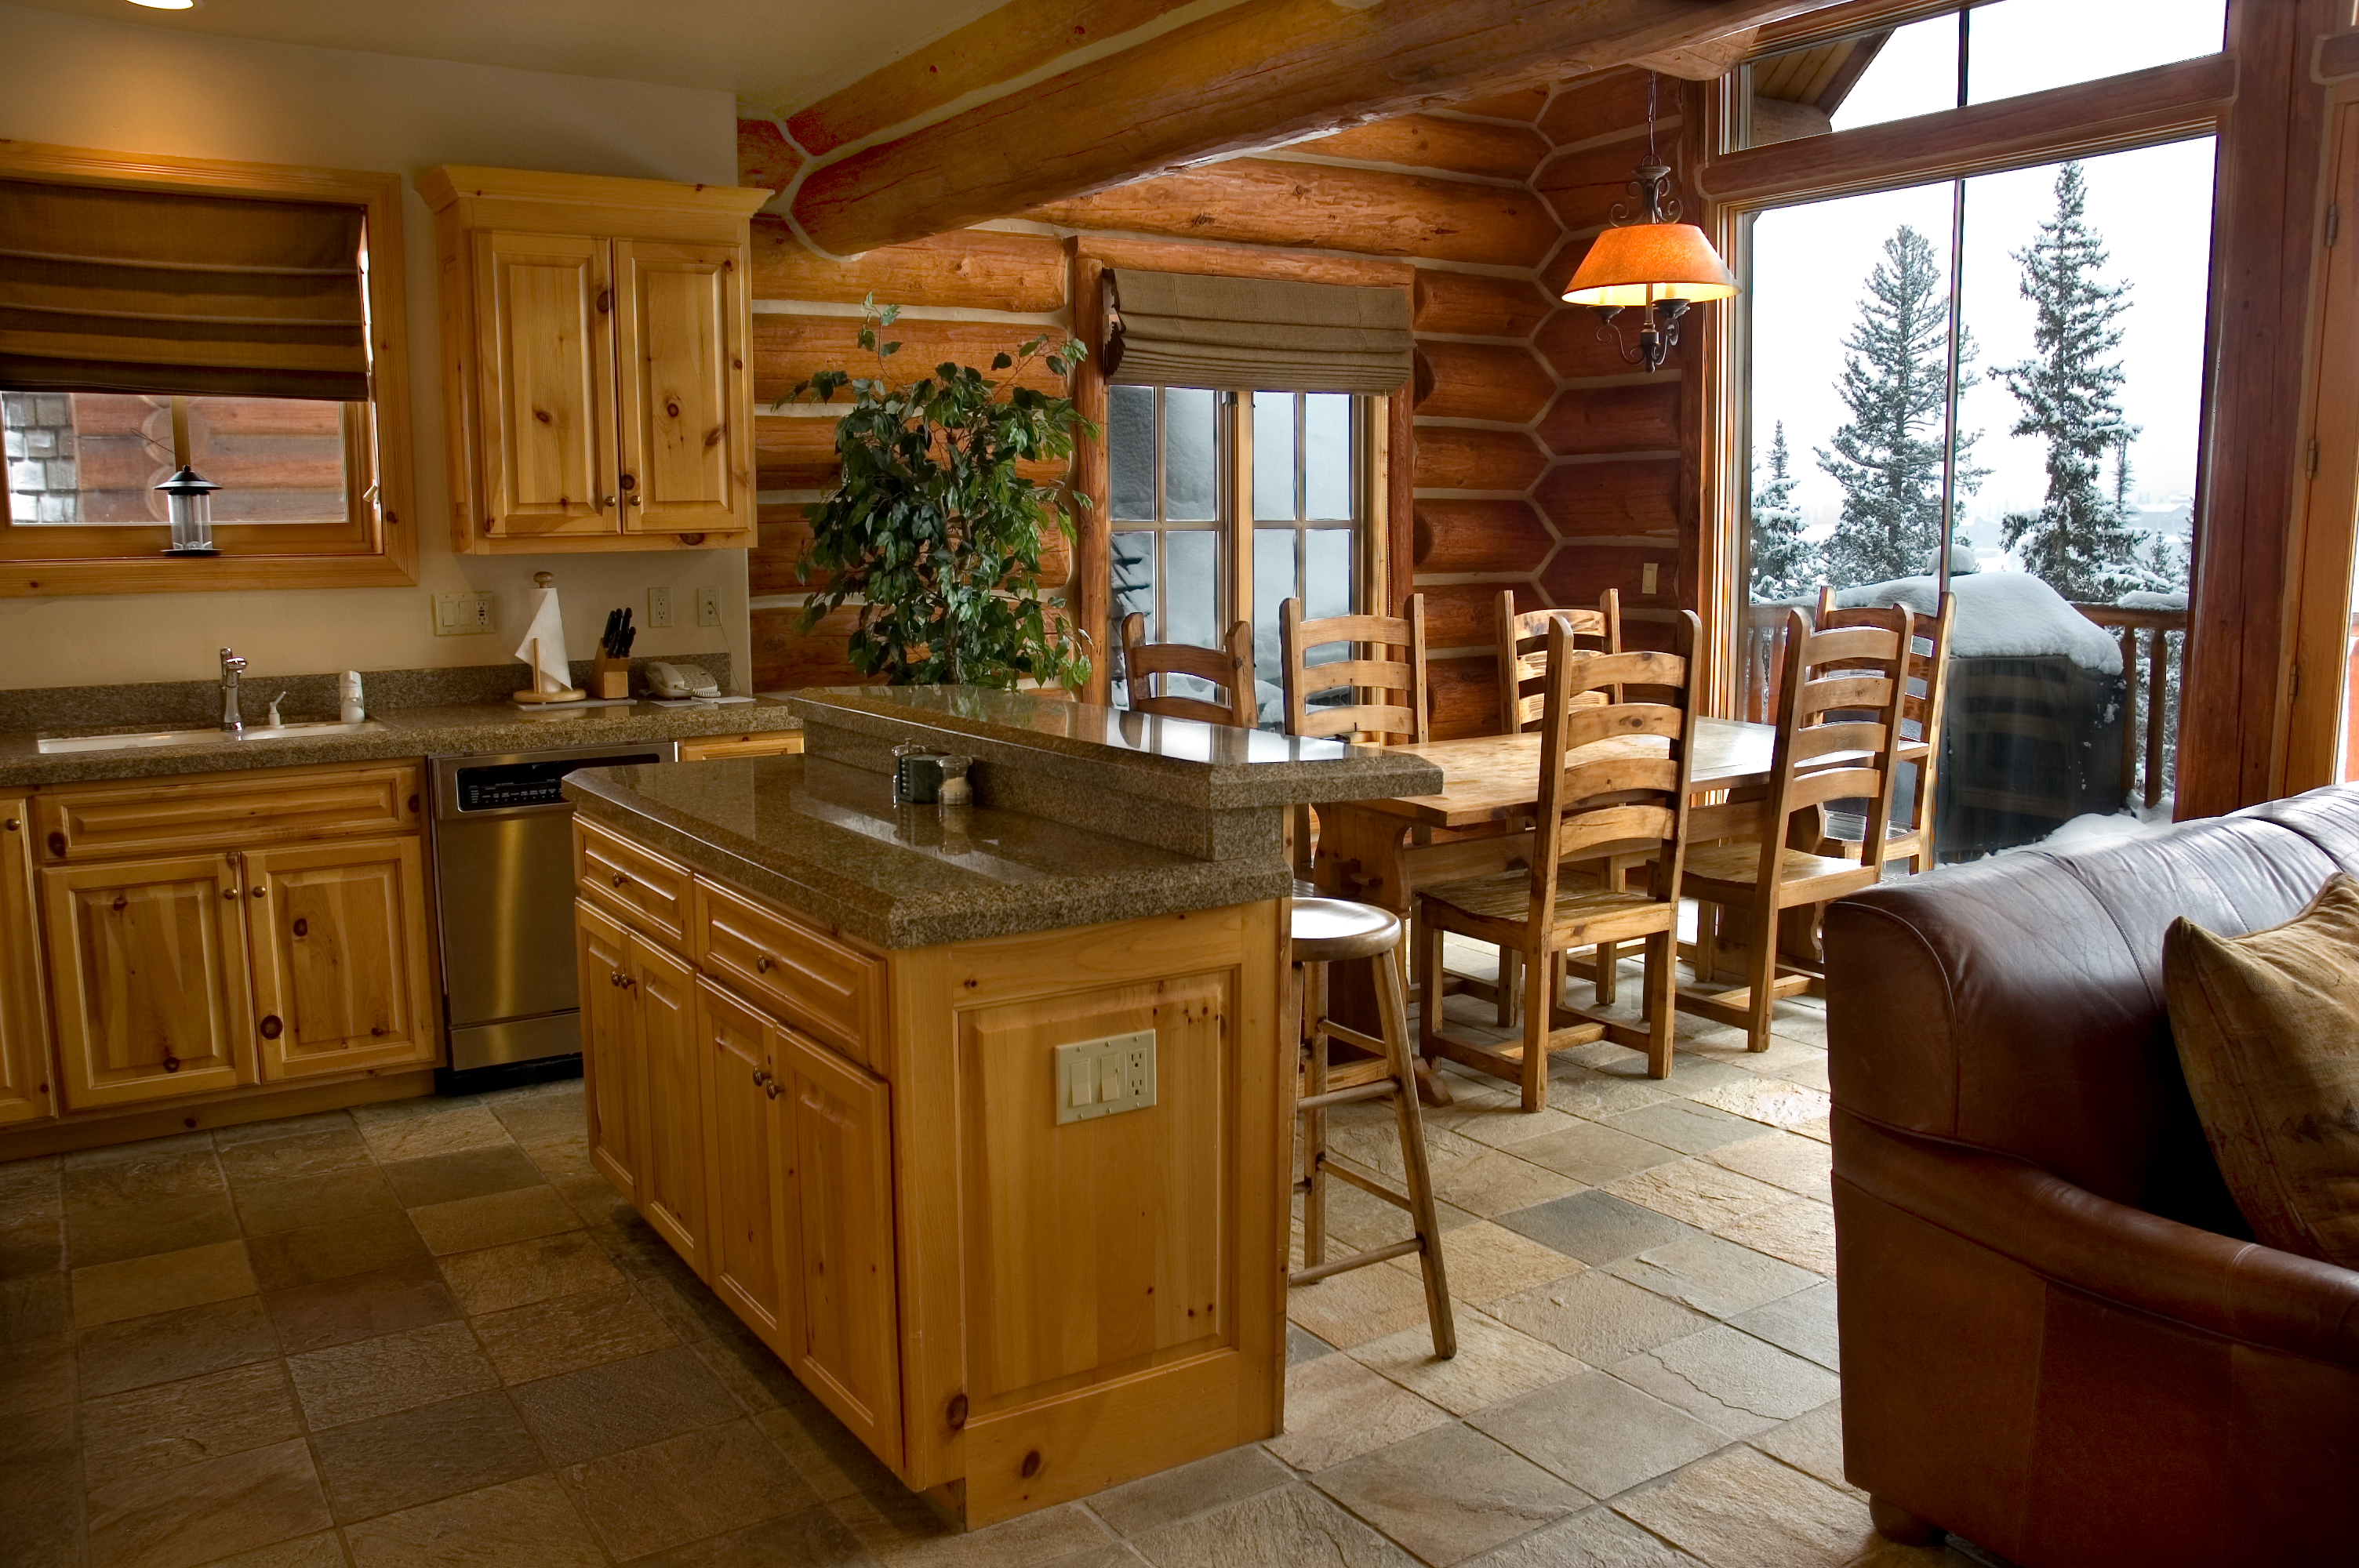 Cabin-kitchen-dining-area